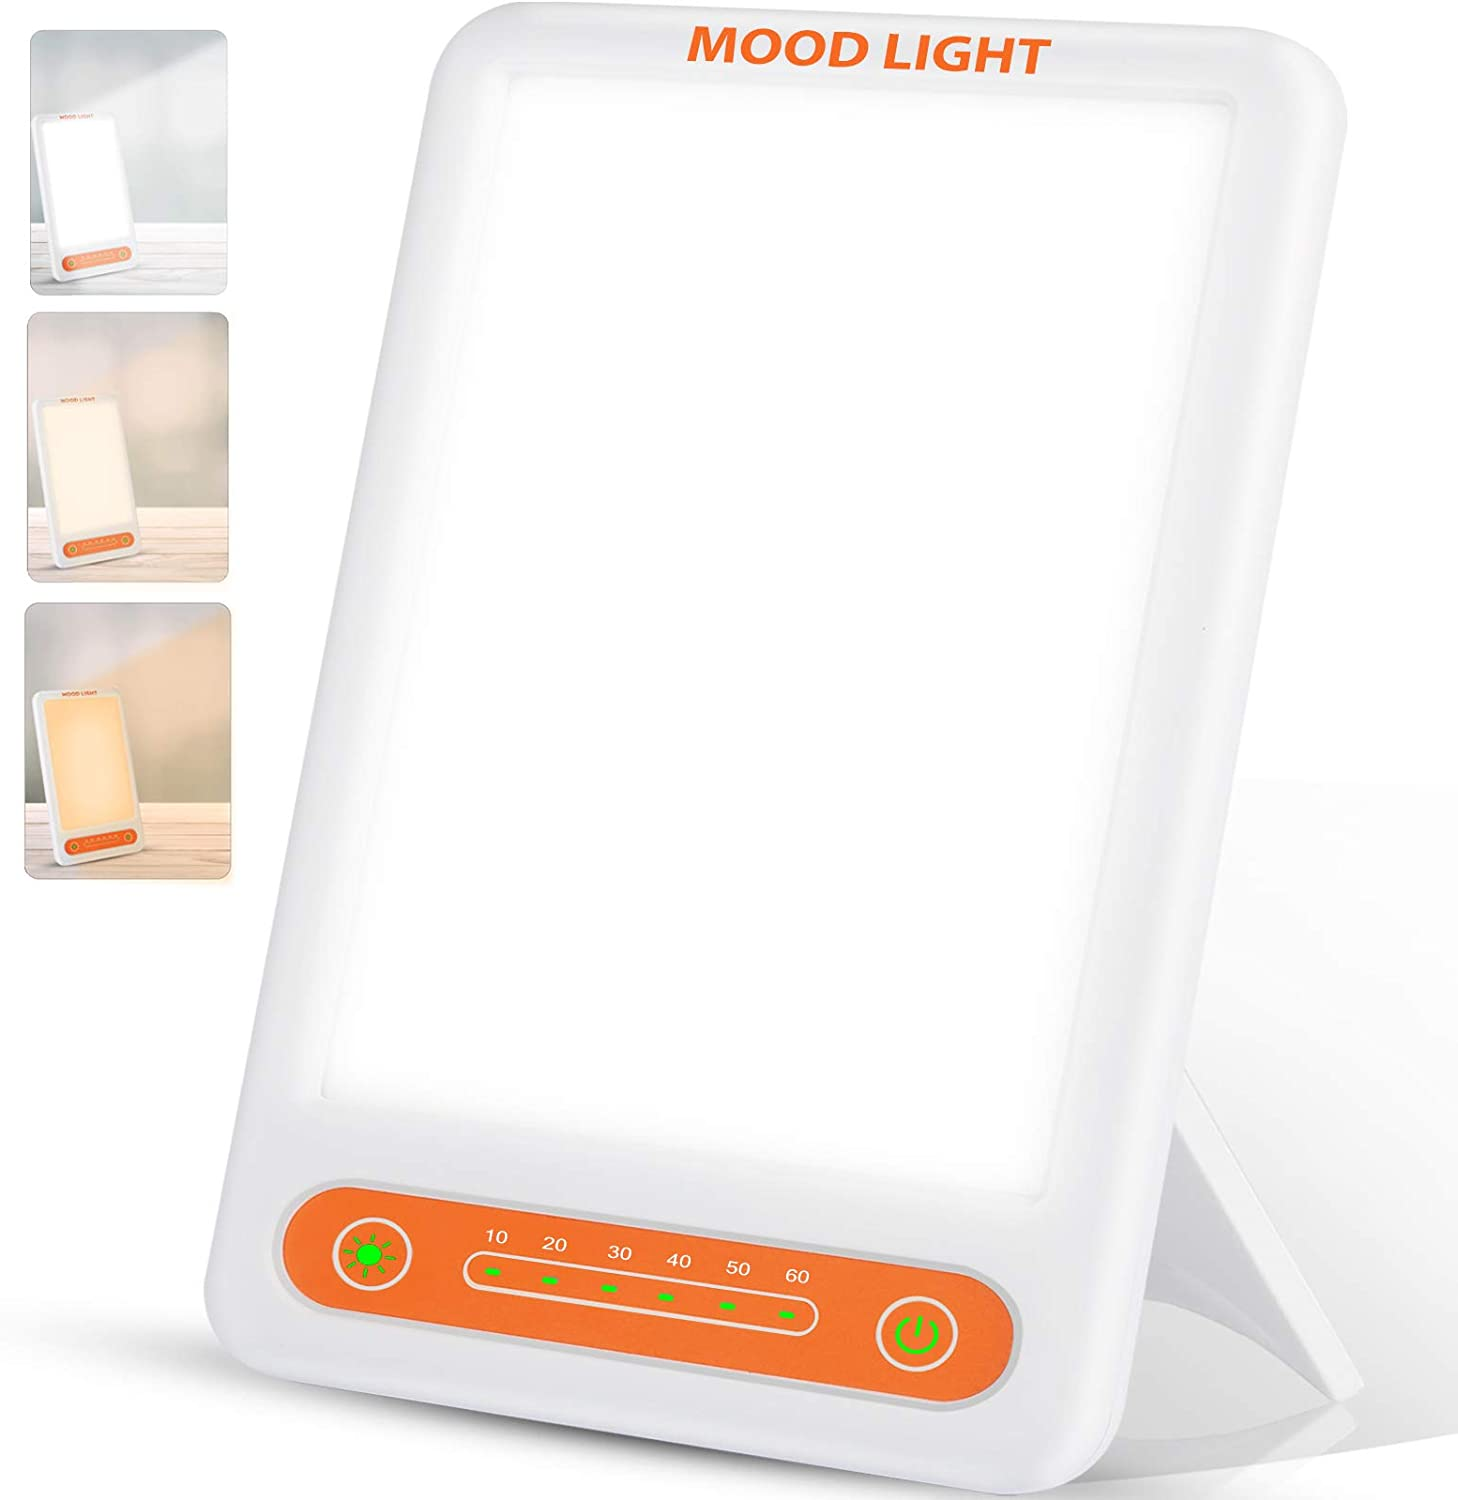 Light Therapy Lamp, Make Up Light UV Free 10000 Lux Sunlight Lamp with 3 Adjustable Colors,Timer Function, Adjustable Brightness Levels, Touch Control, Standing Bracket, Best Gifts for Mother's Day